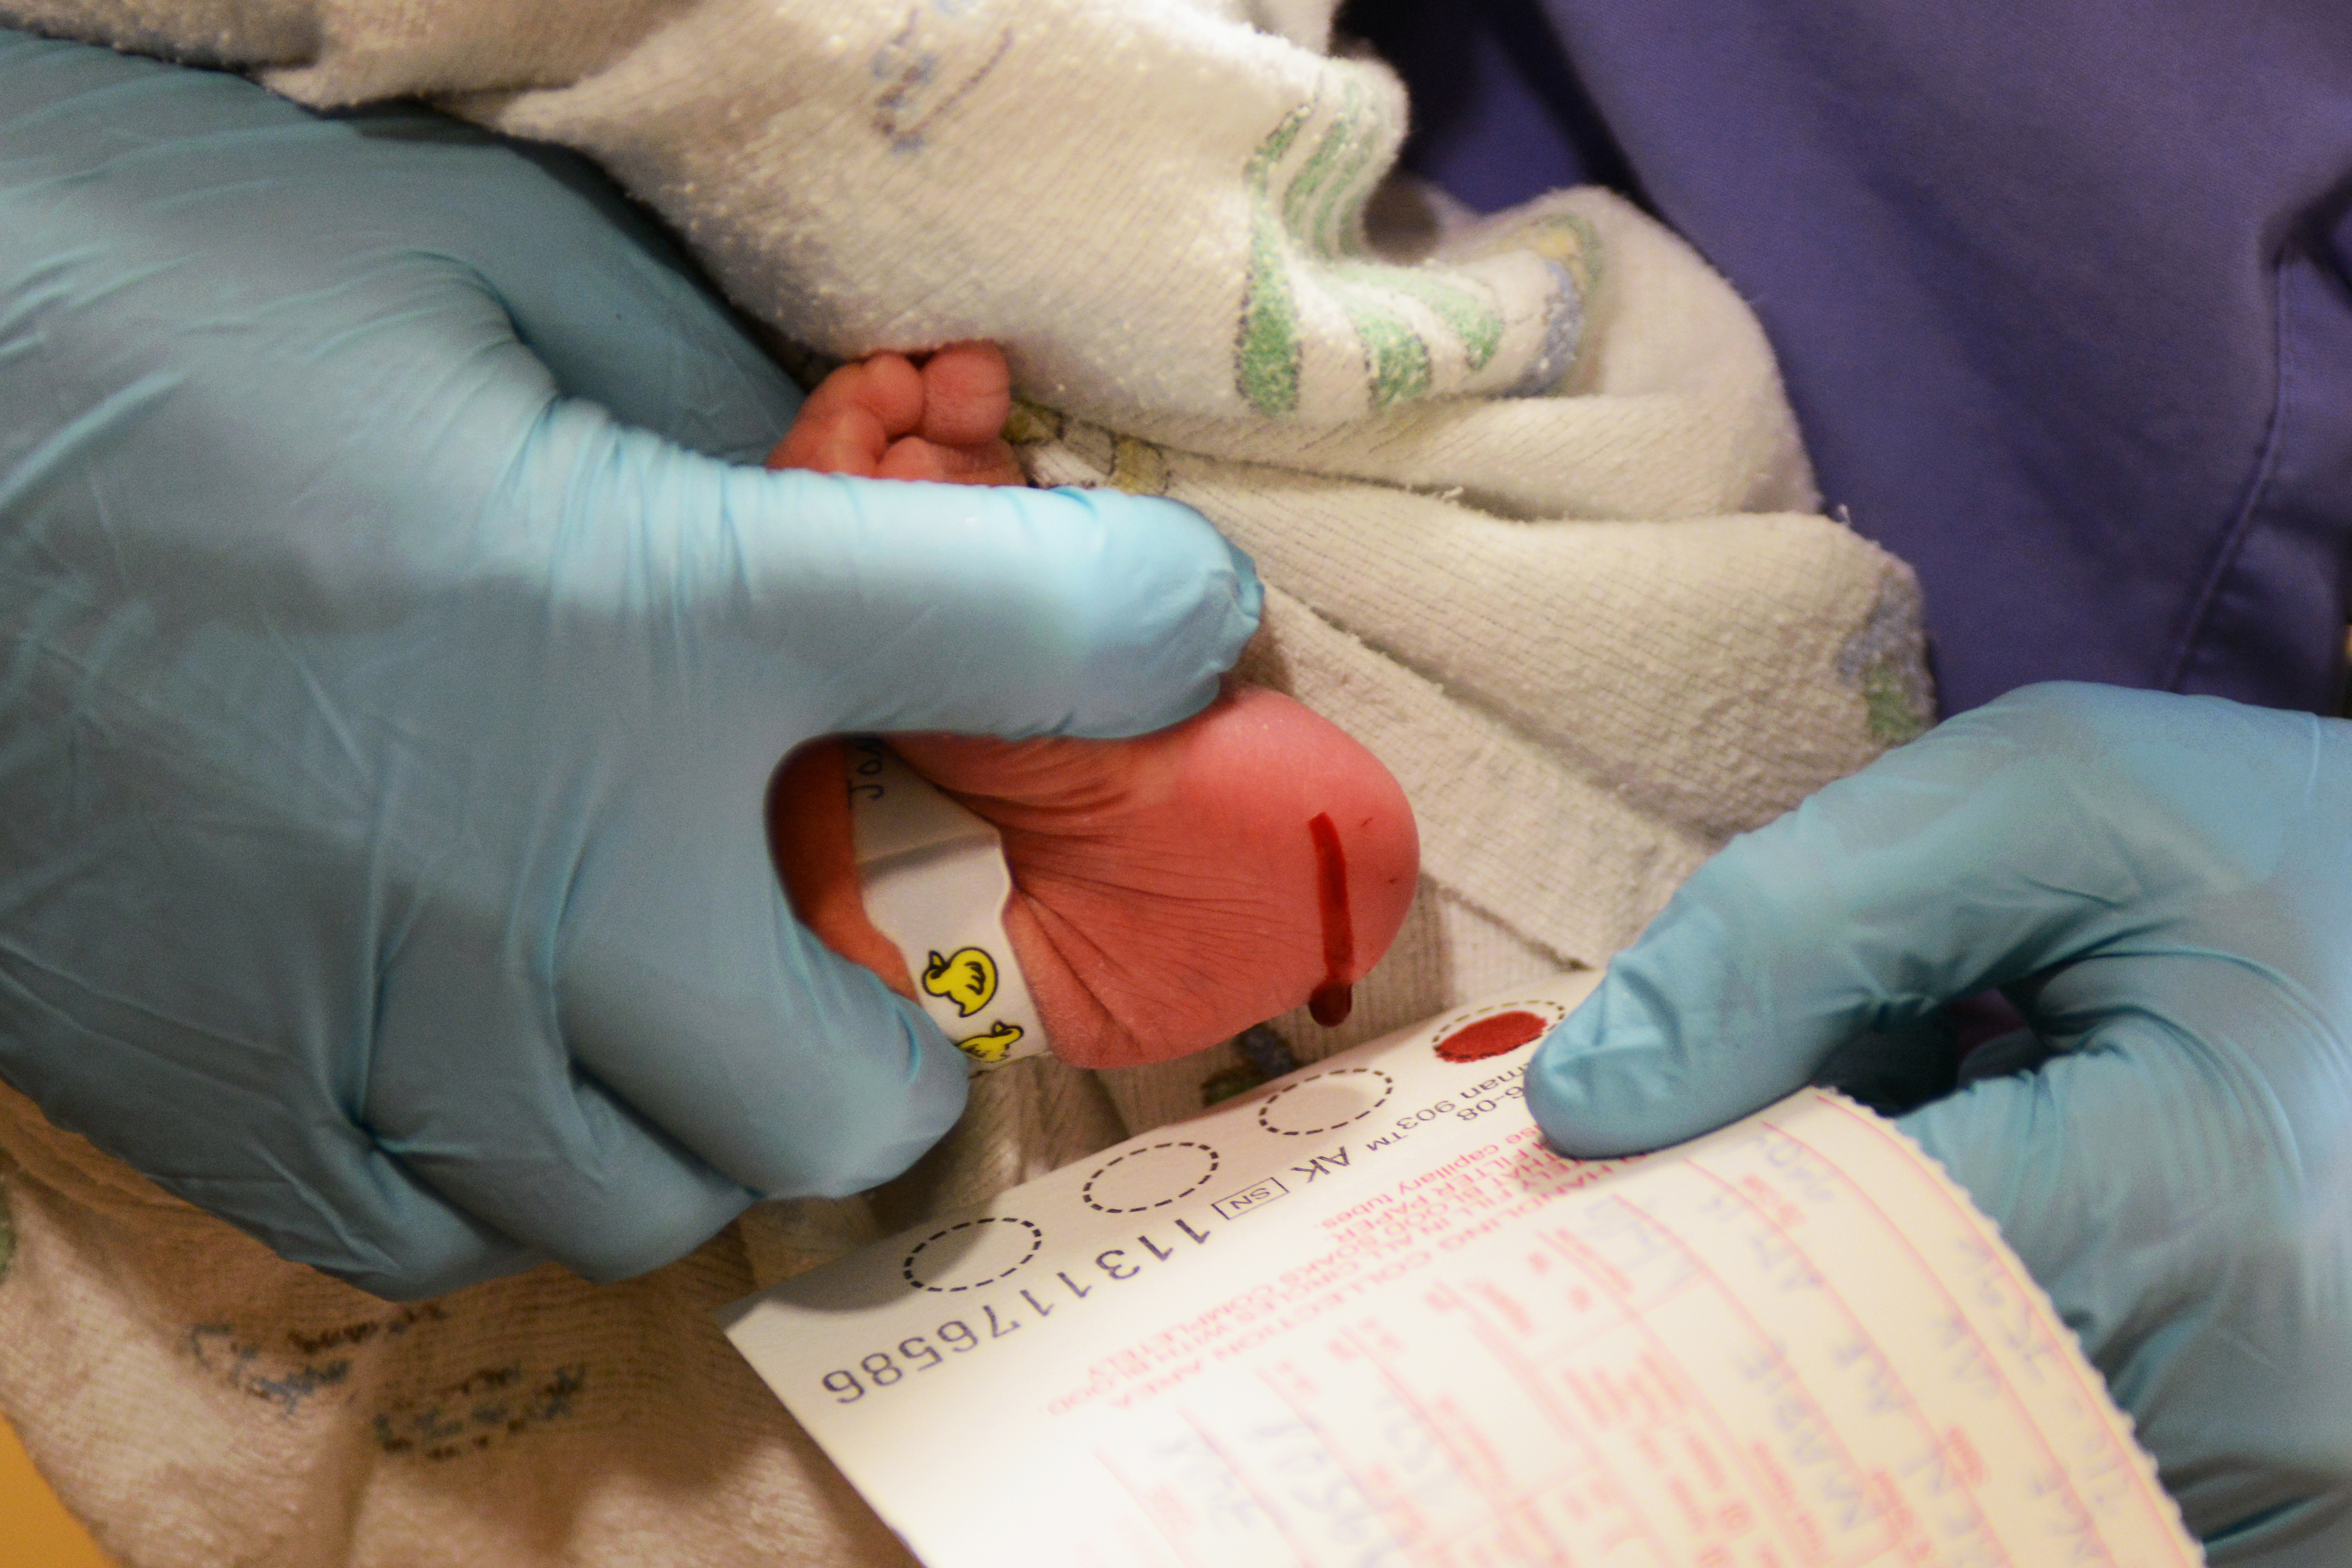 Blood samples are taken from a one-day-old infant in November of 2014 at Alaska Native Medical Center. The blood was drawn for screening for numerous conditions including CPT1A, which occurs in some Alaska Native people and other Arctic indigenous people. (Erik Hill / ADN archive 2014)